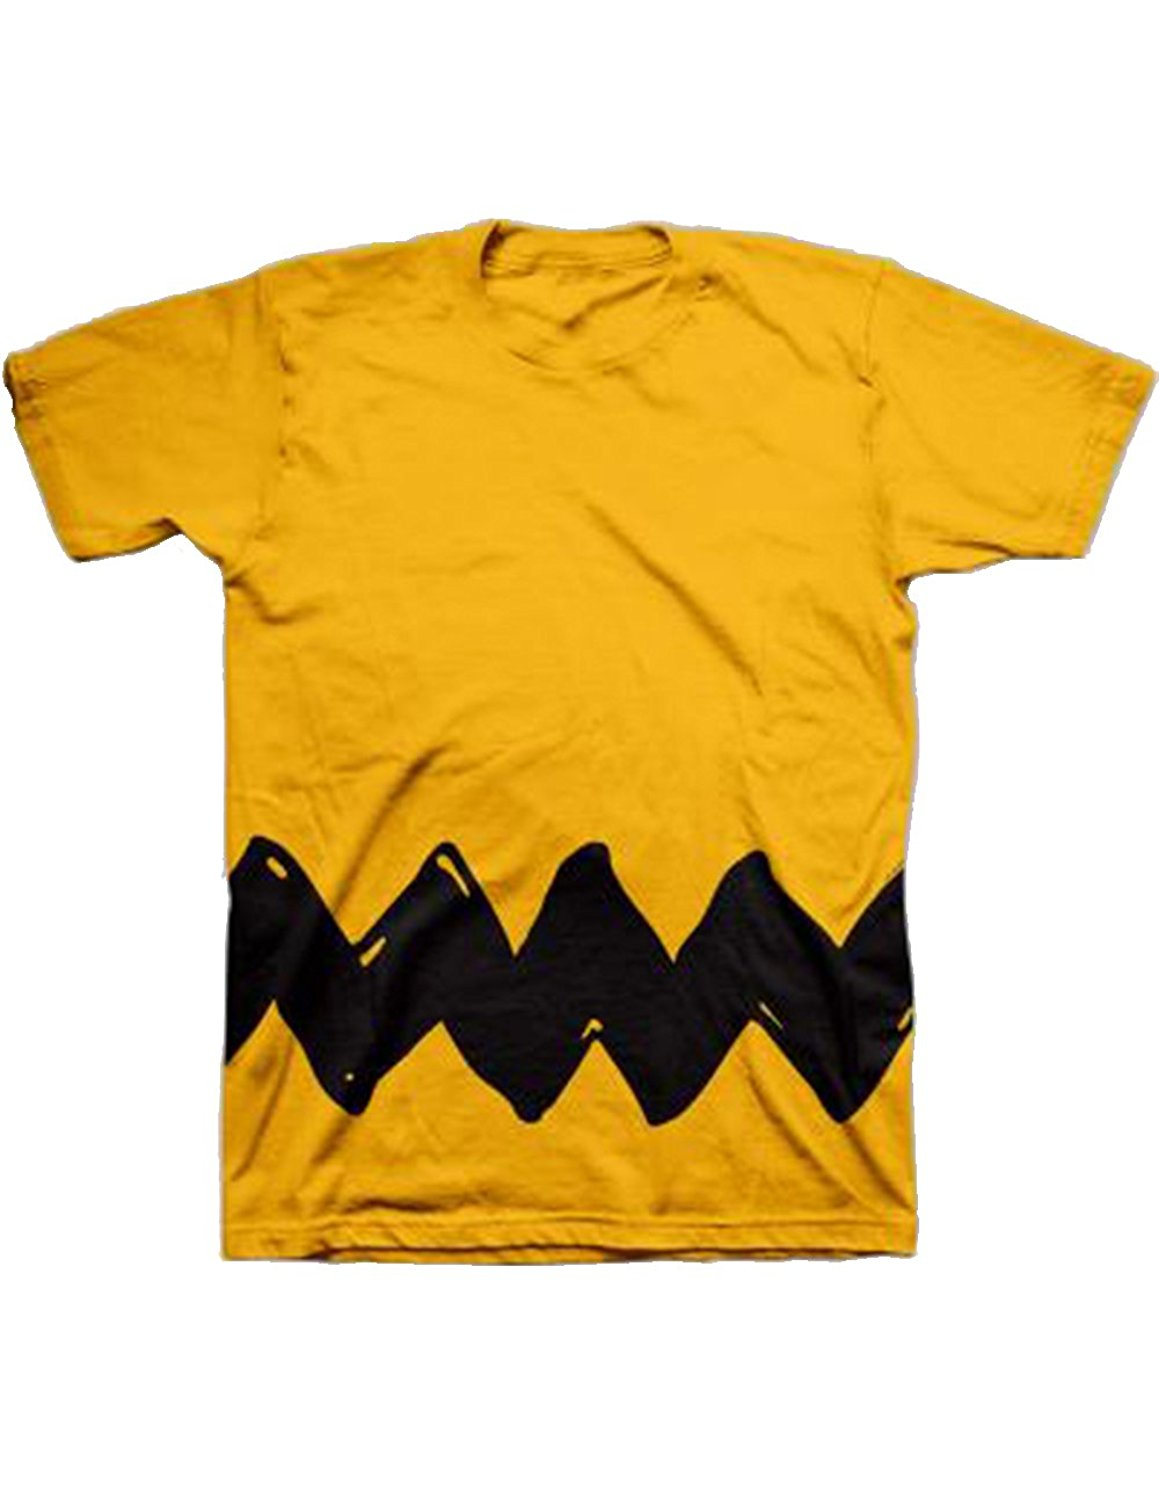 Iconic t shirt design - Charlie Brown T-shirt